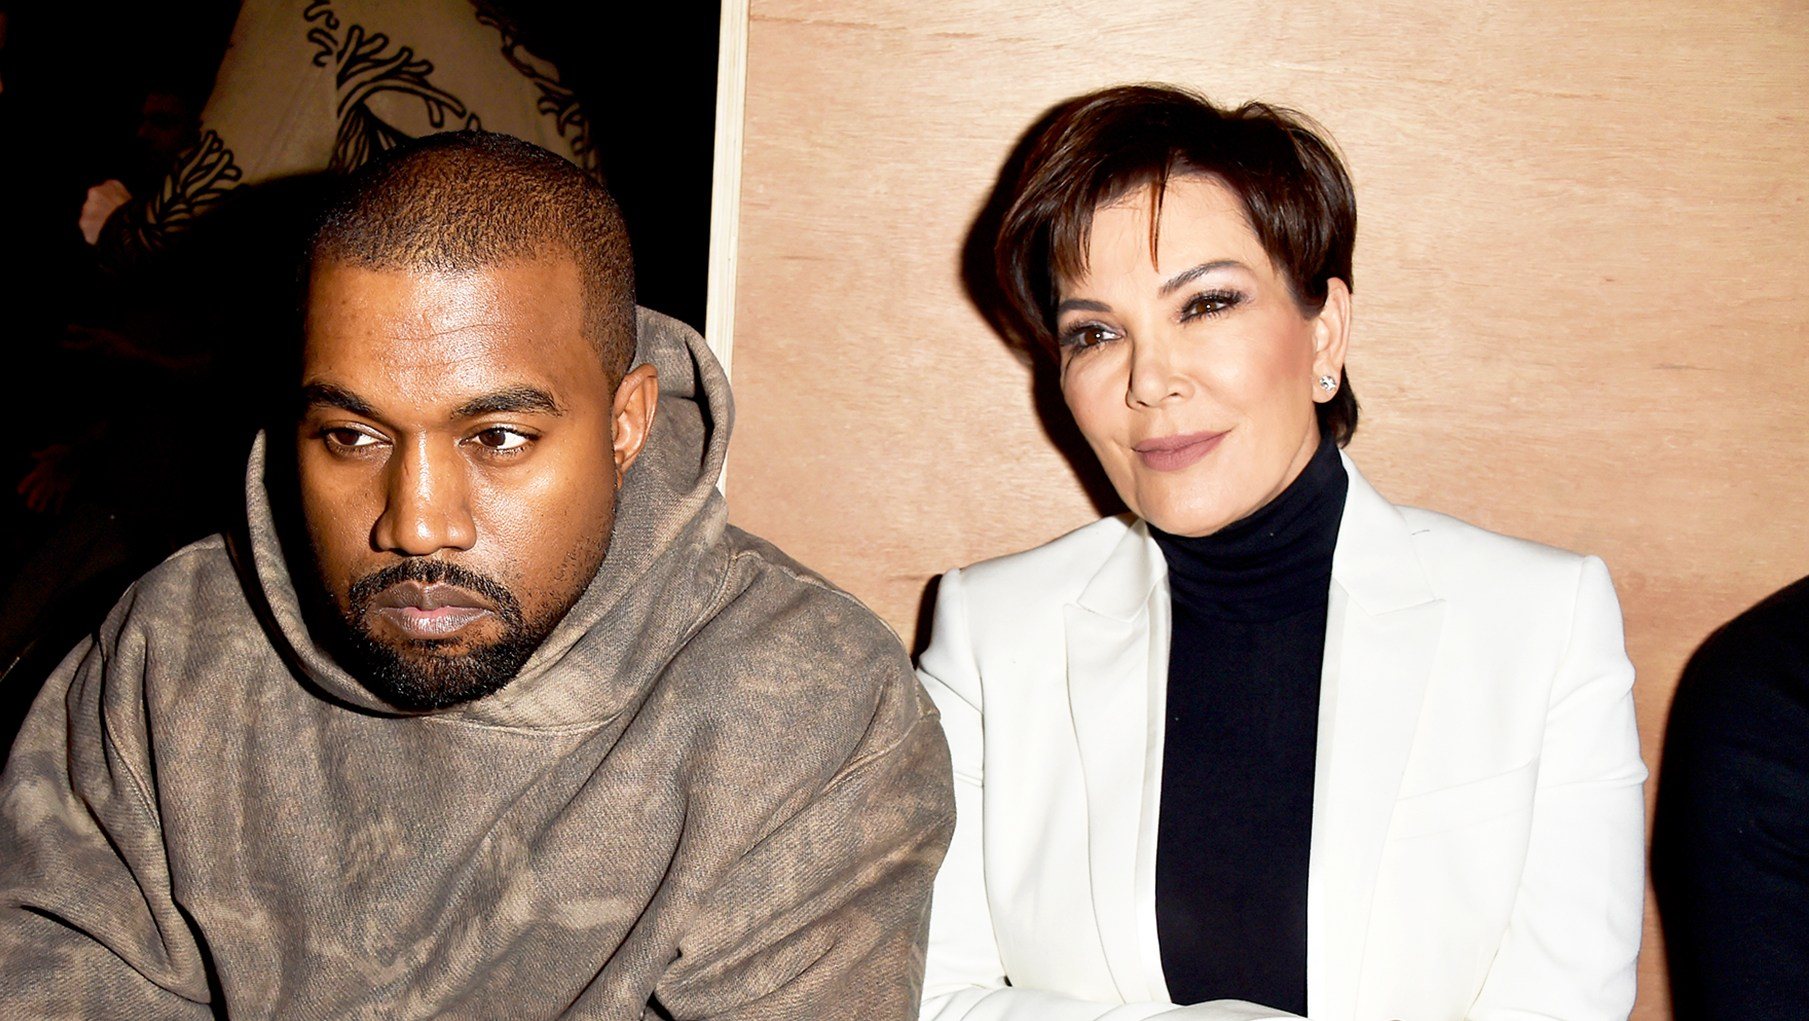 Kanye West and Kris Jenner attend the Givenchy show during Paris Fashion Week Womenswear Fall/Winter 2016/2017 in Paris, France.